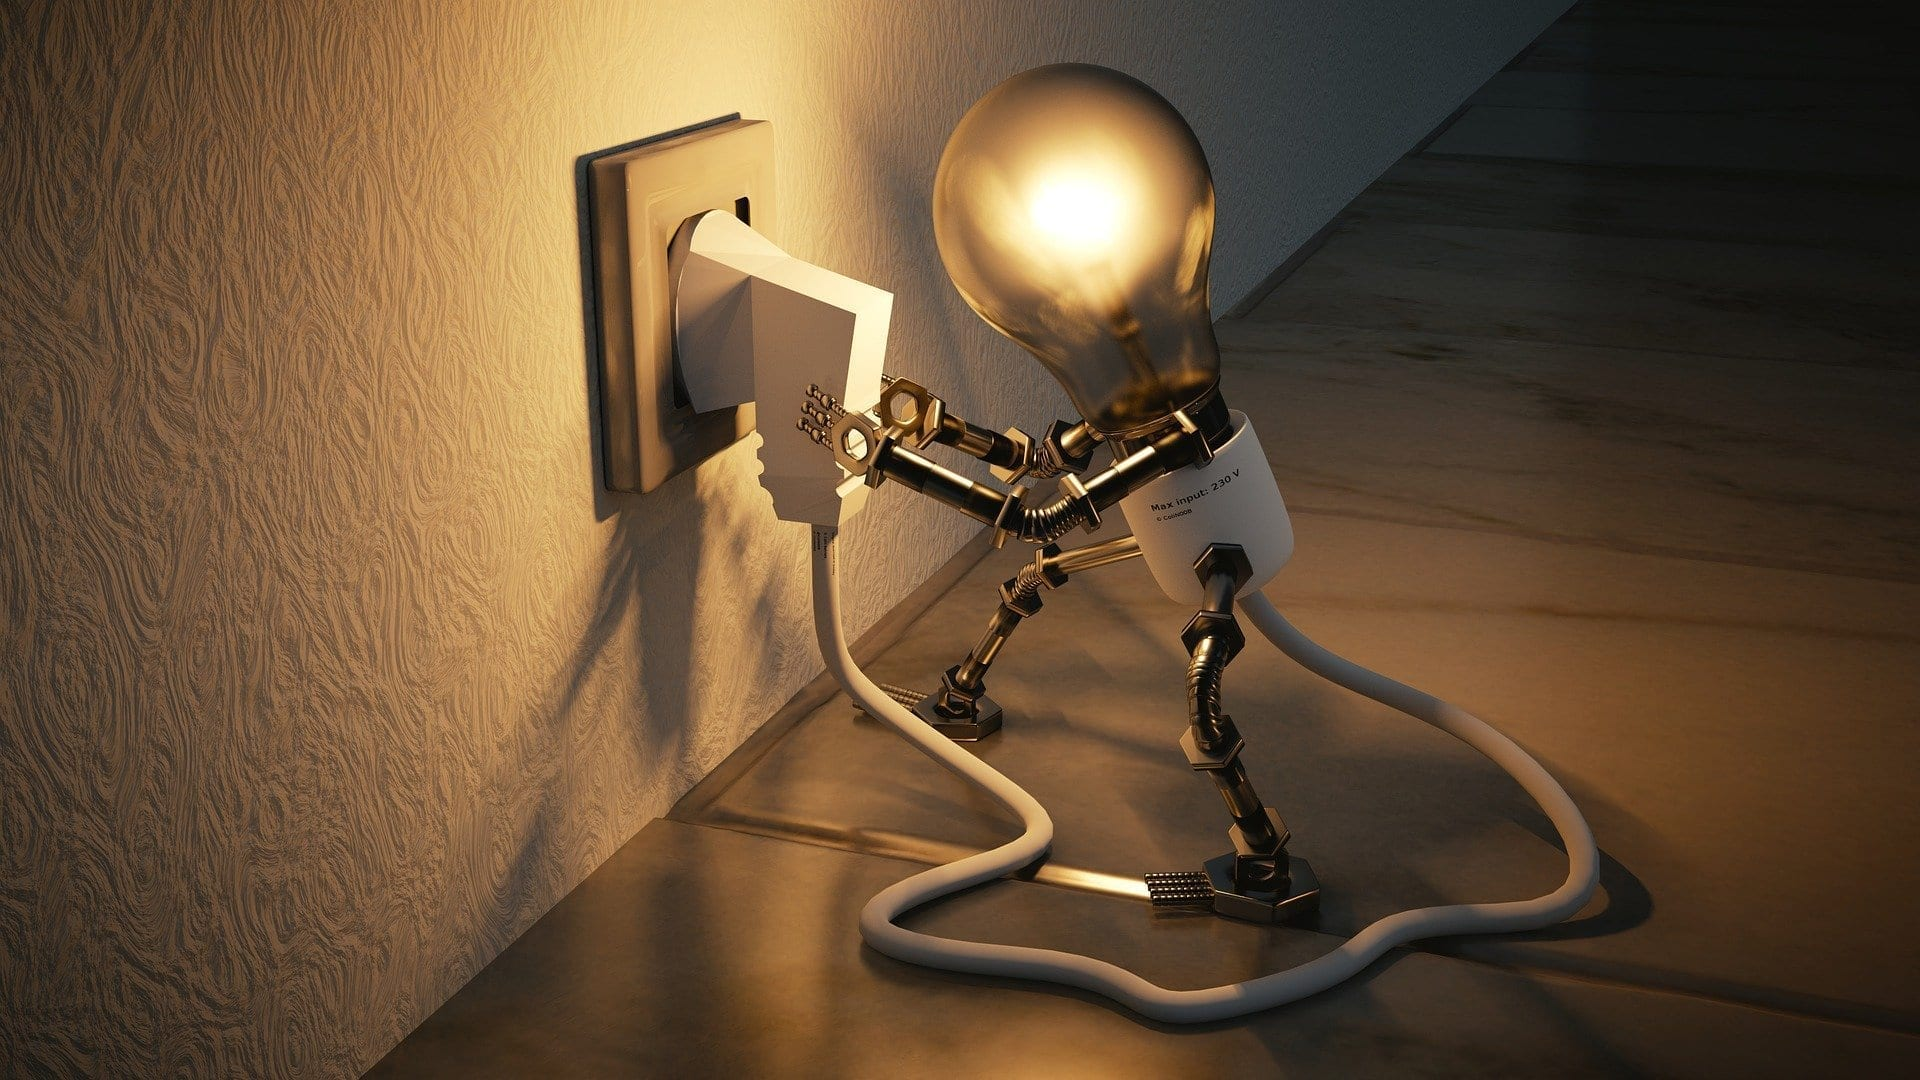 an image of a lightbulb robot plugging in a plug